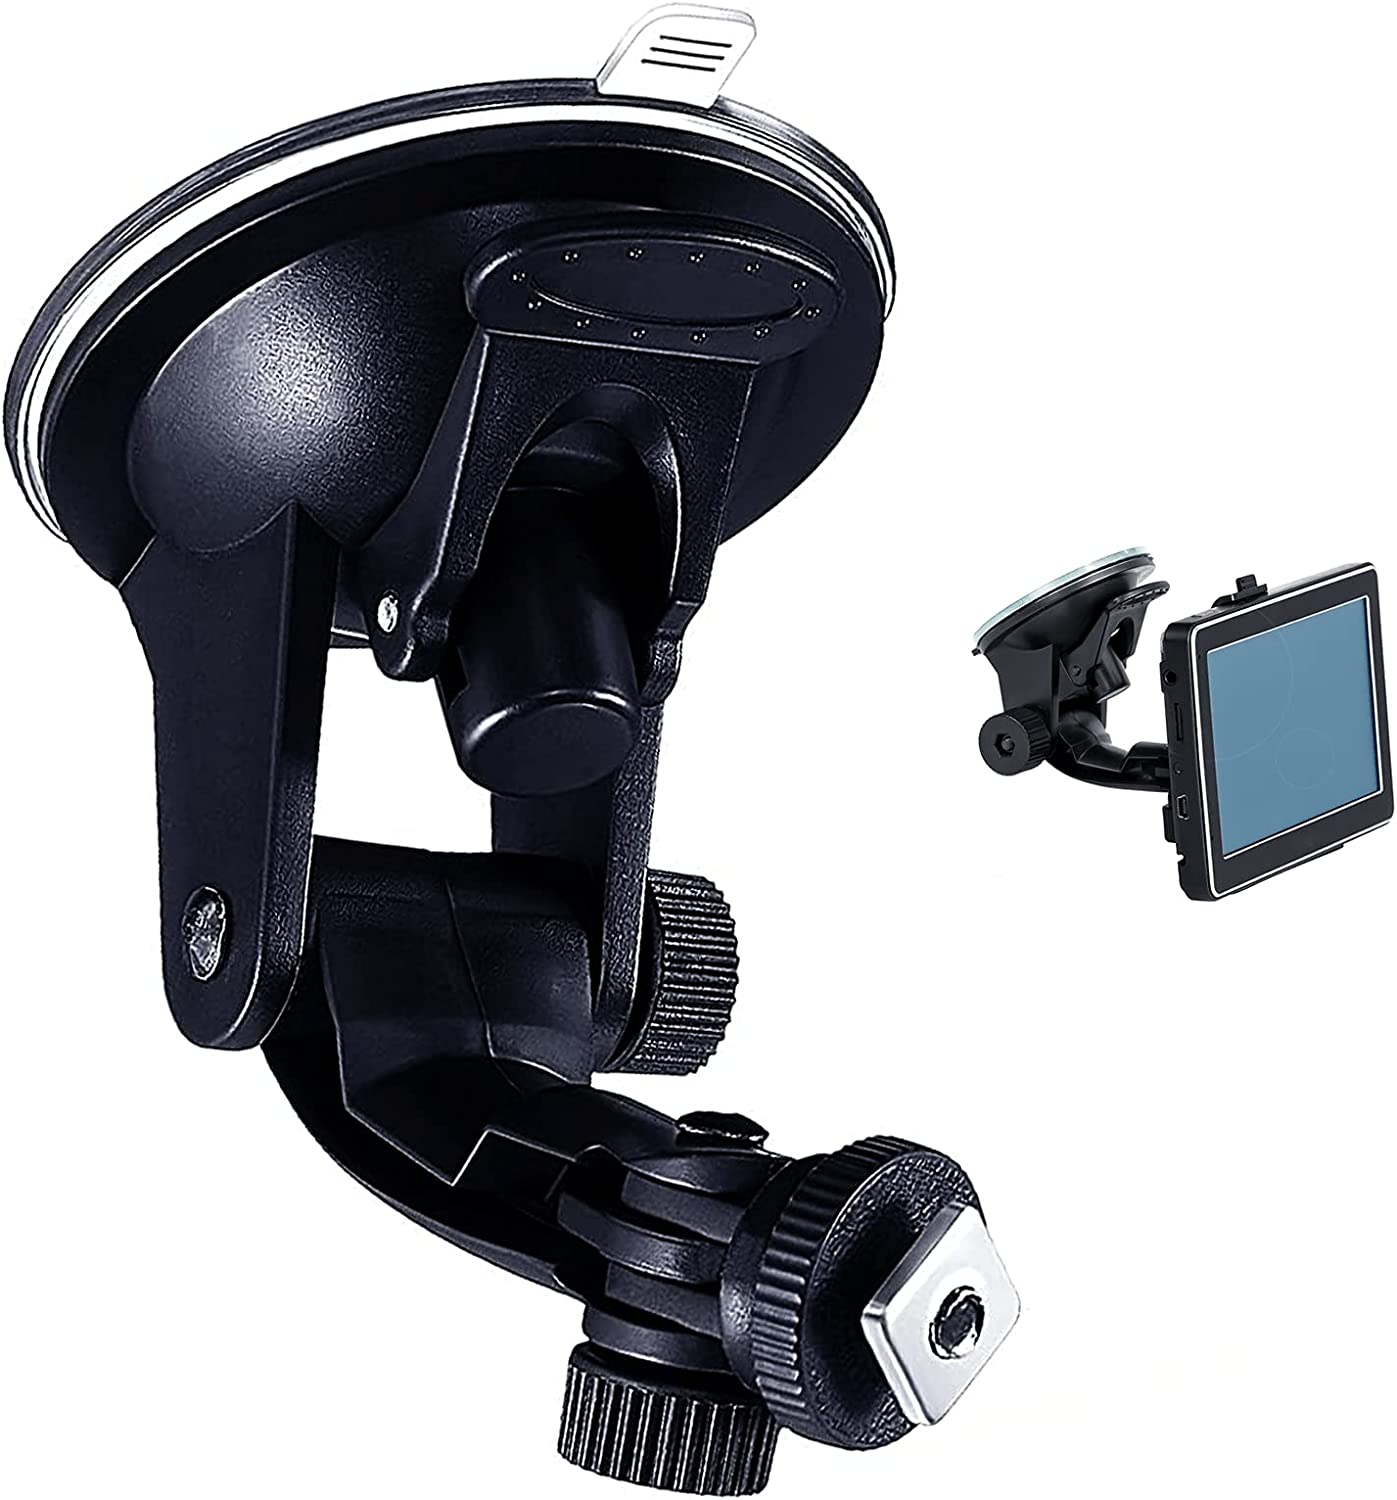 Windshield camera and GPS Mount